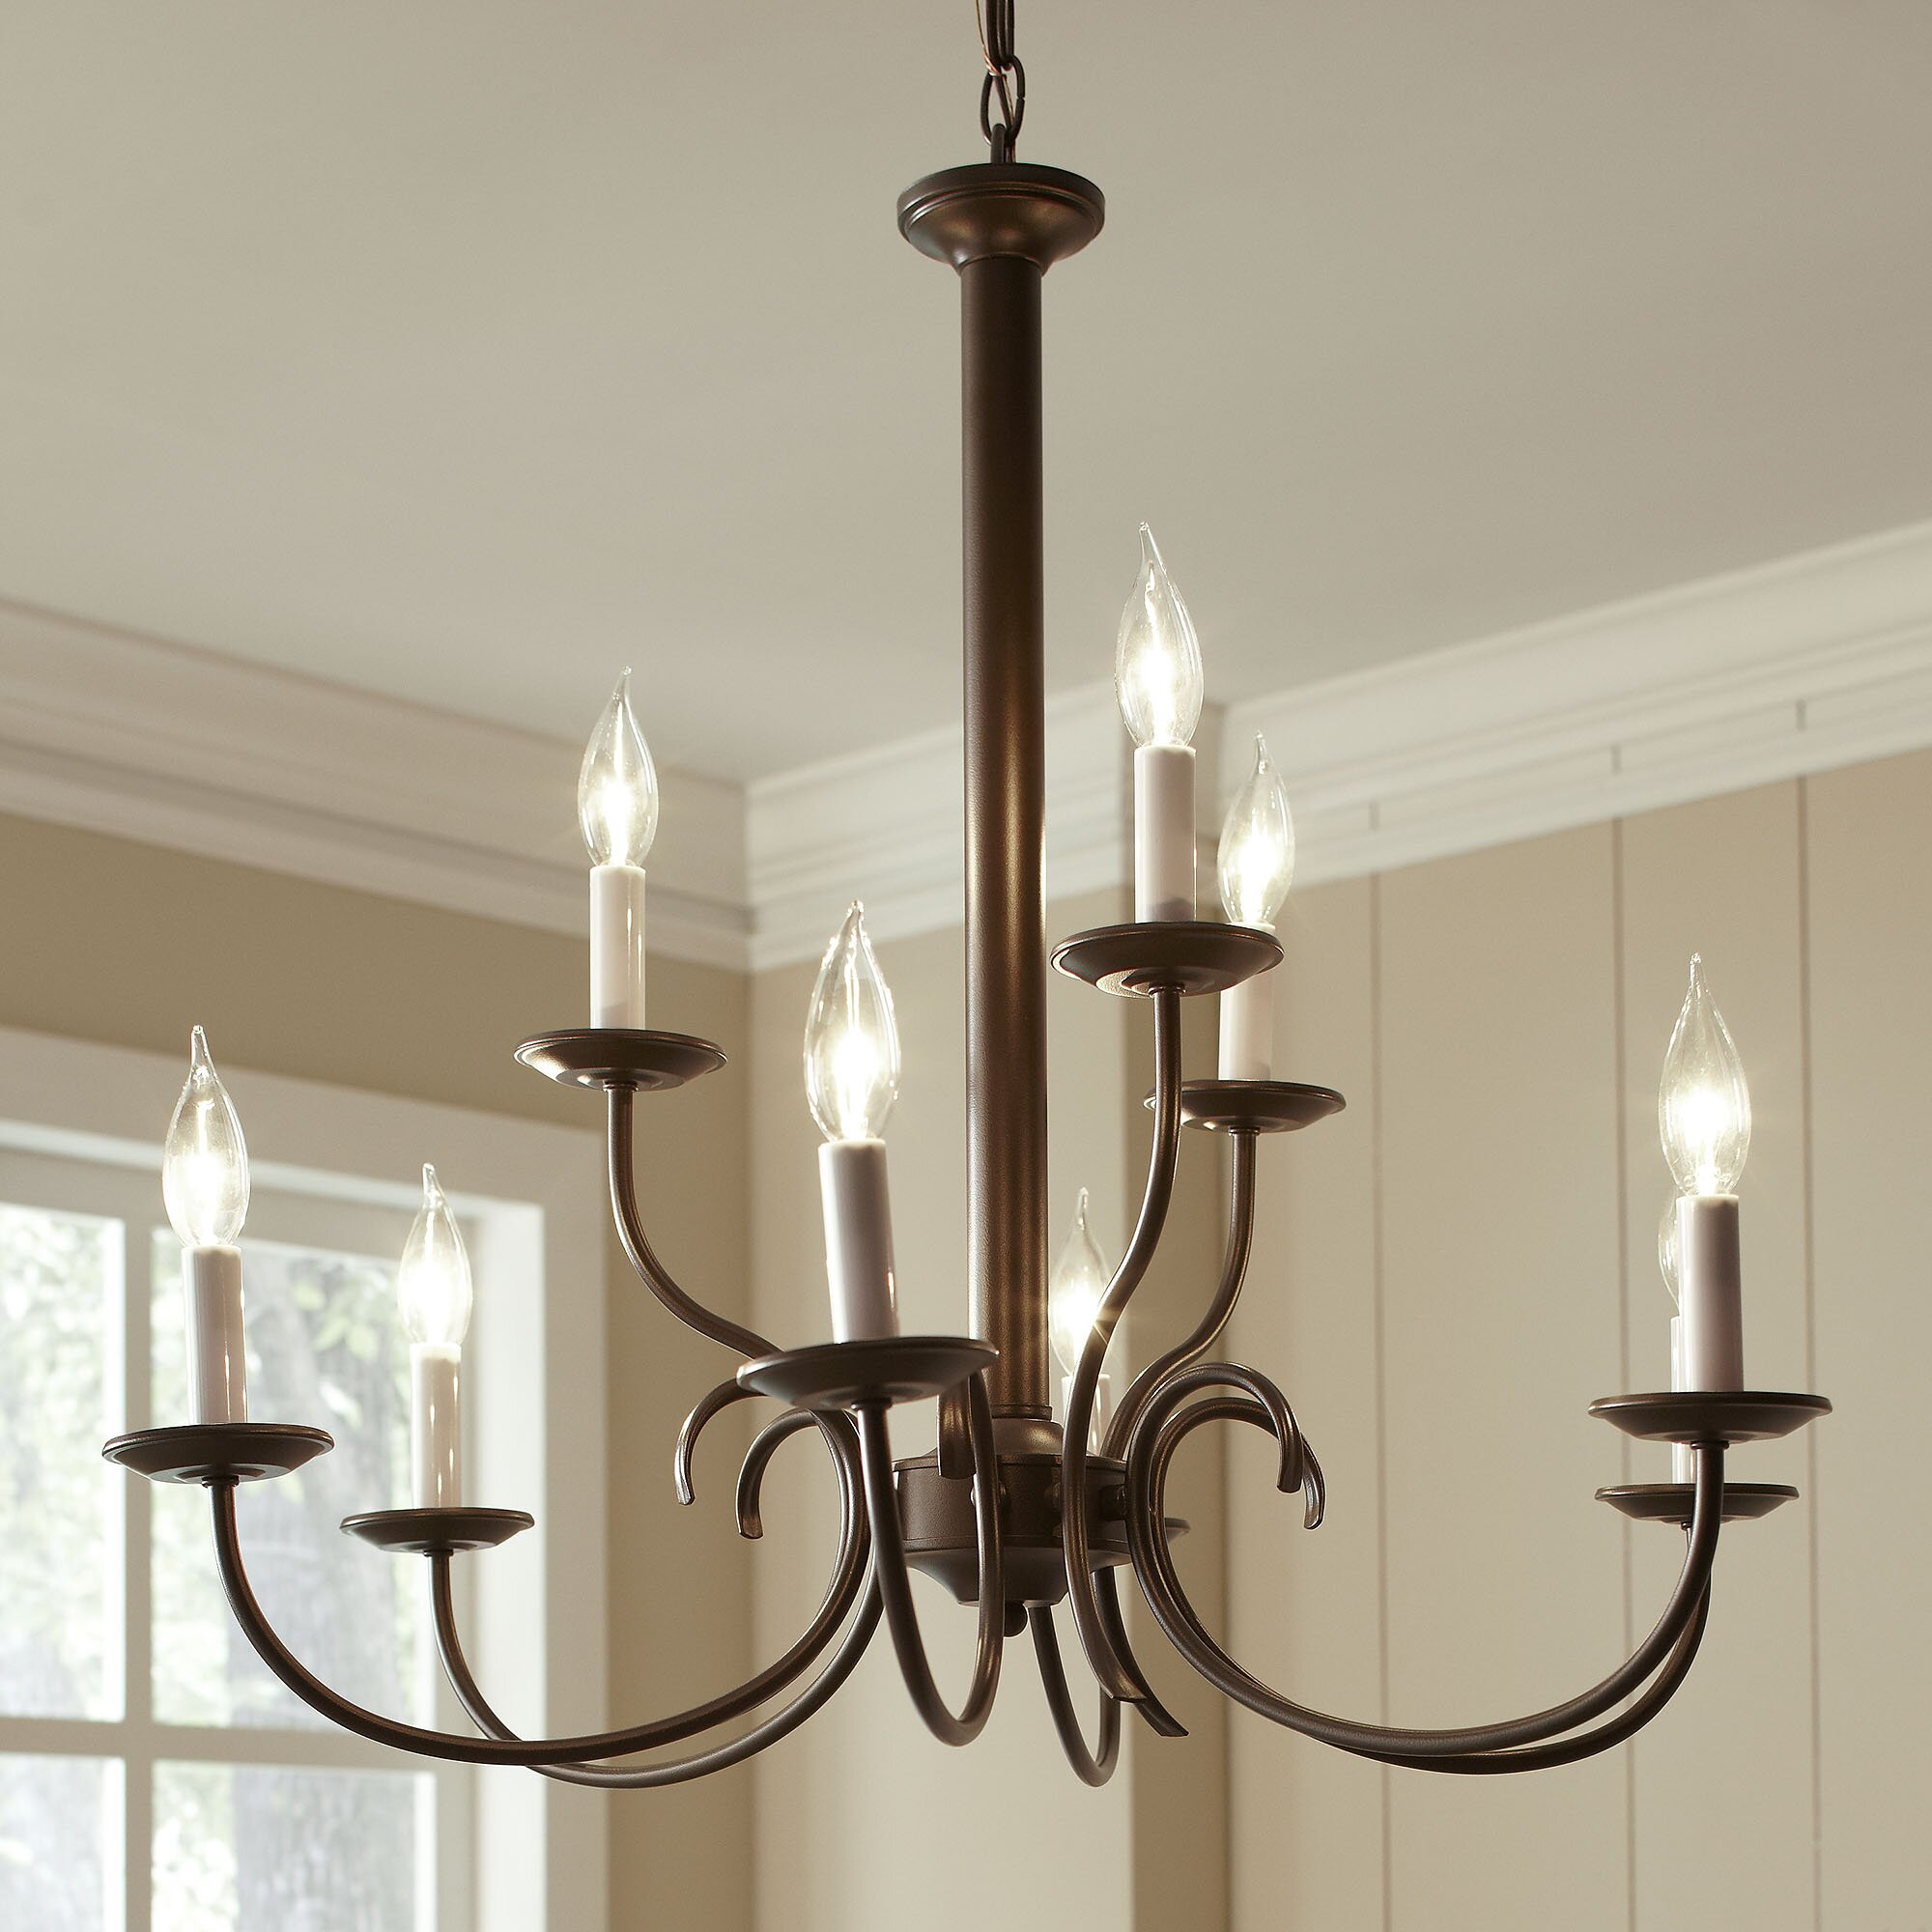 Birch lane robbins 9 light candle style chandelier reviews wayfair - Popular chandelier styles ...